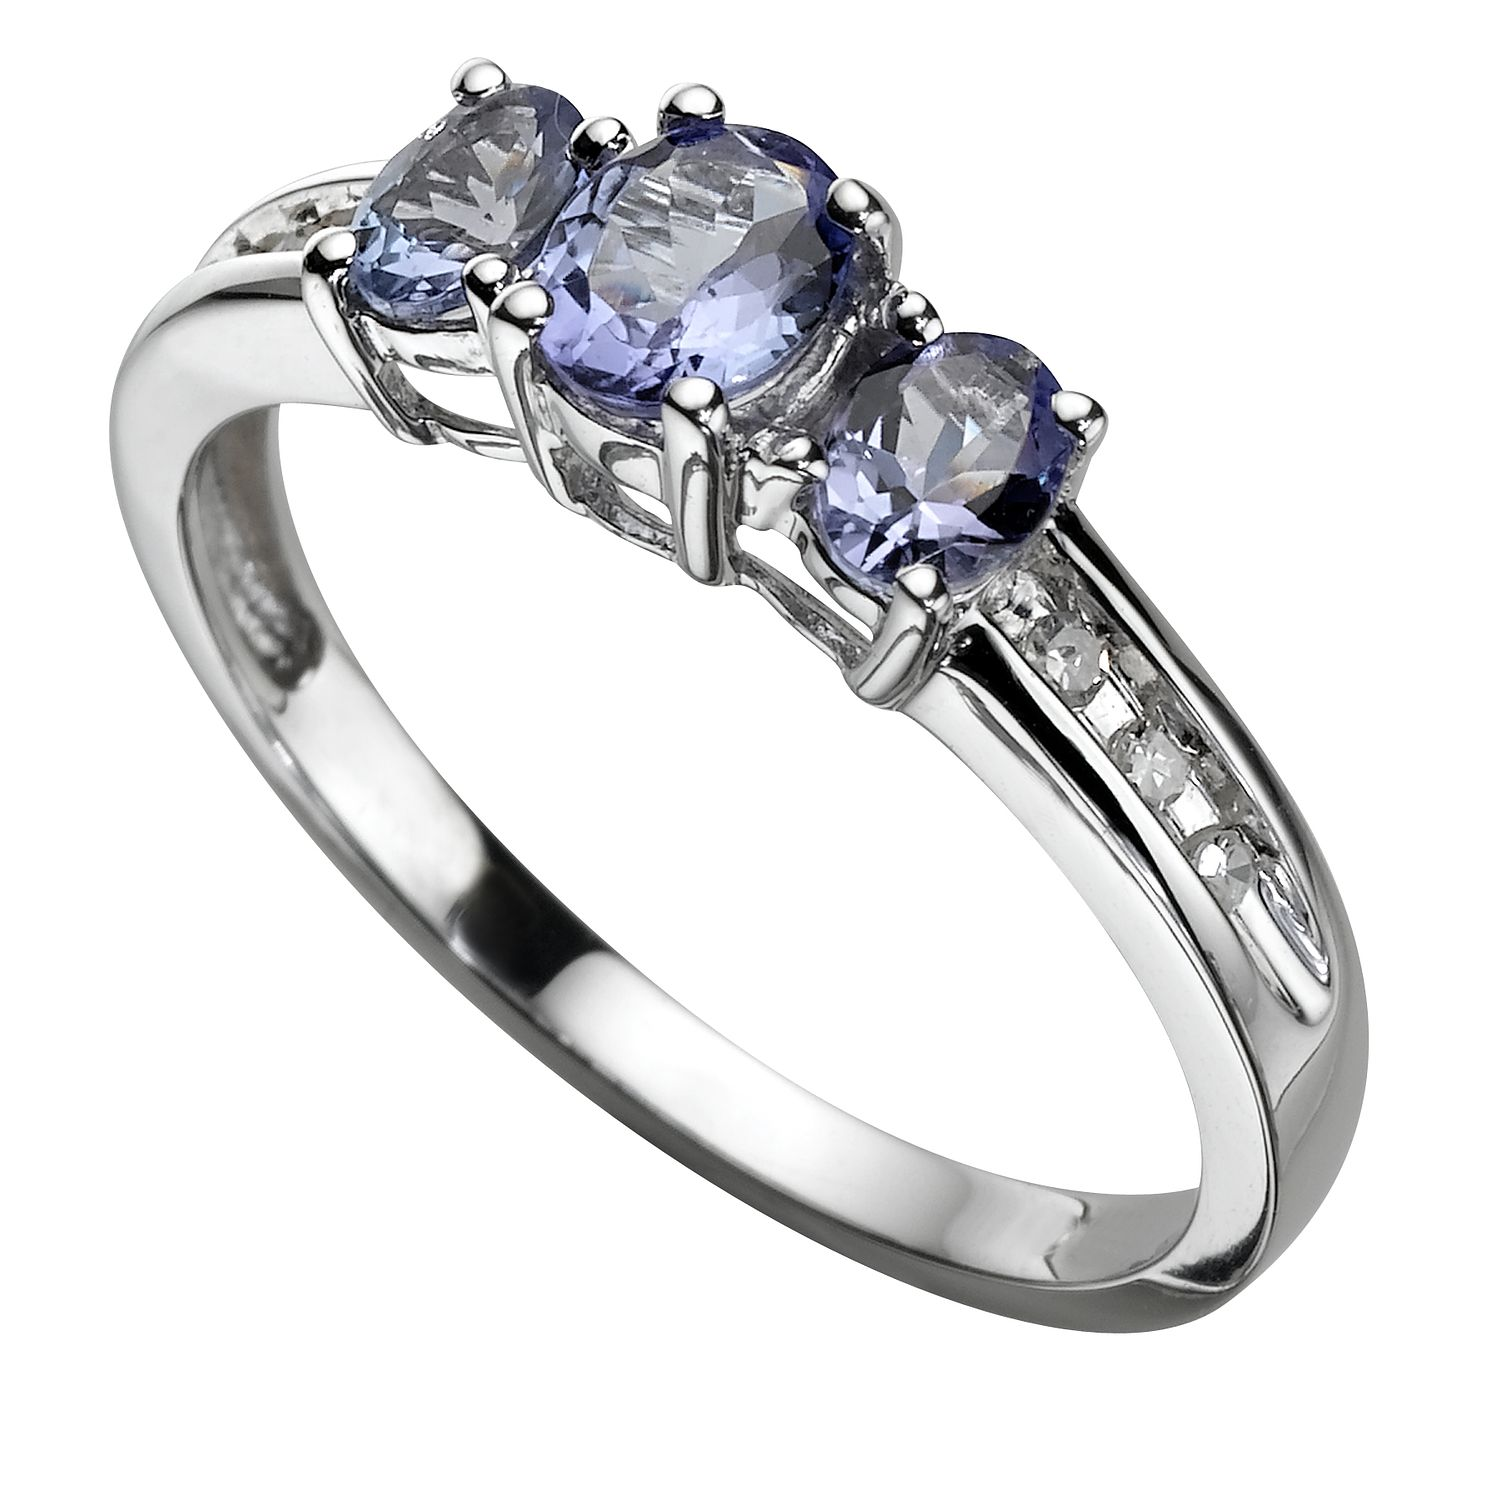 images rings pinterest ring best mint rose cool gold on tanzanite halo lavender wedding emerald cut engagement